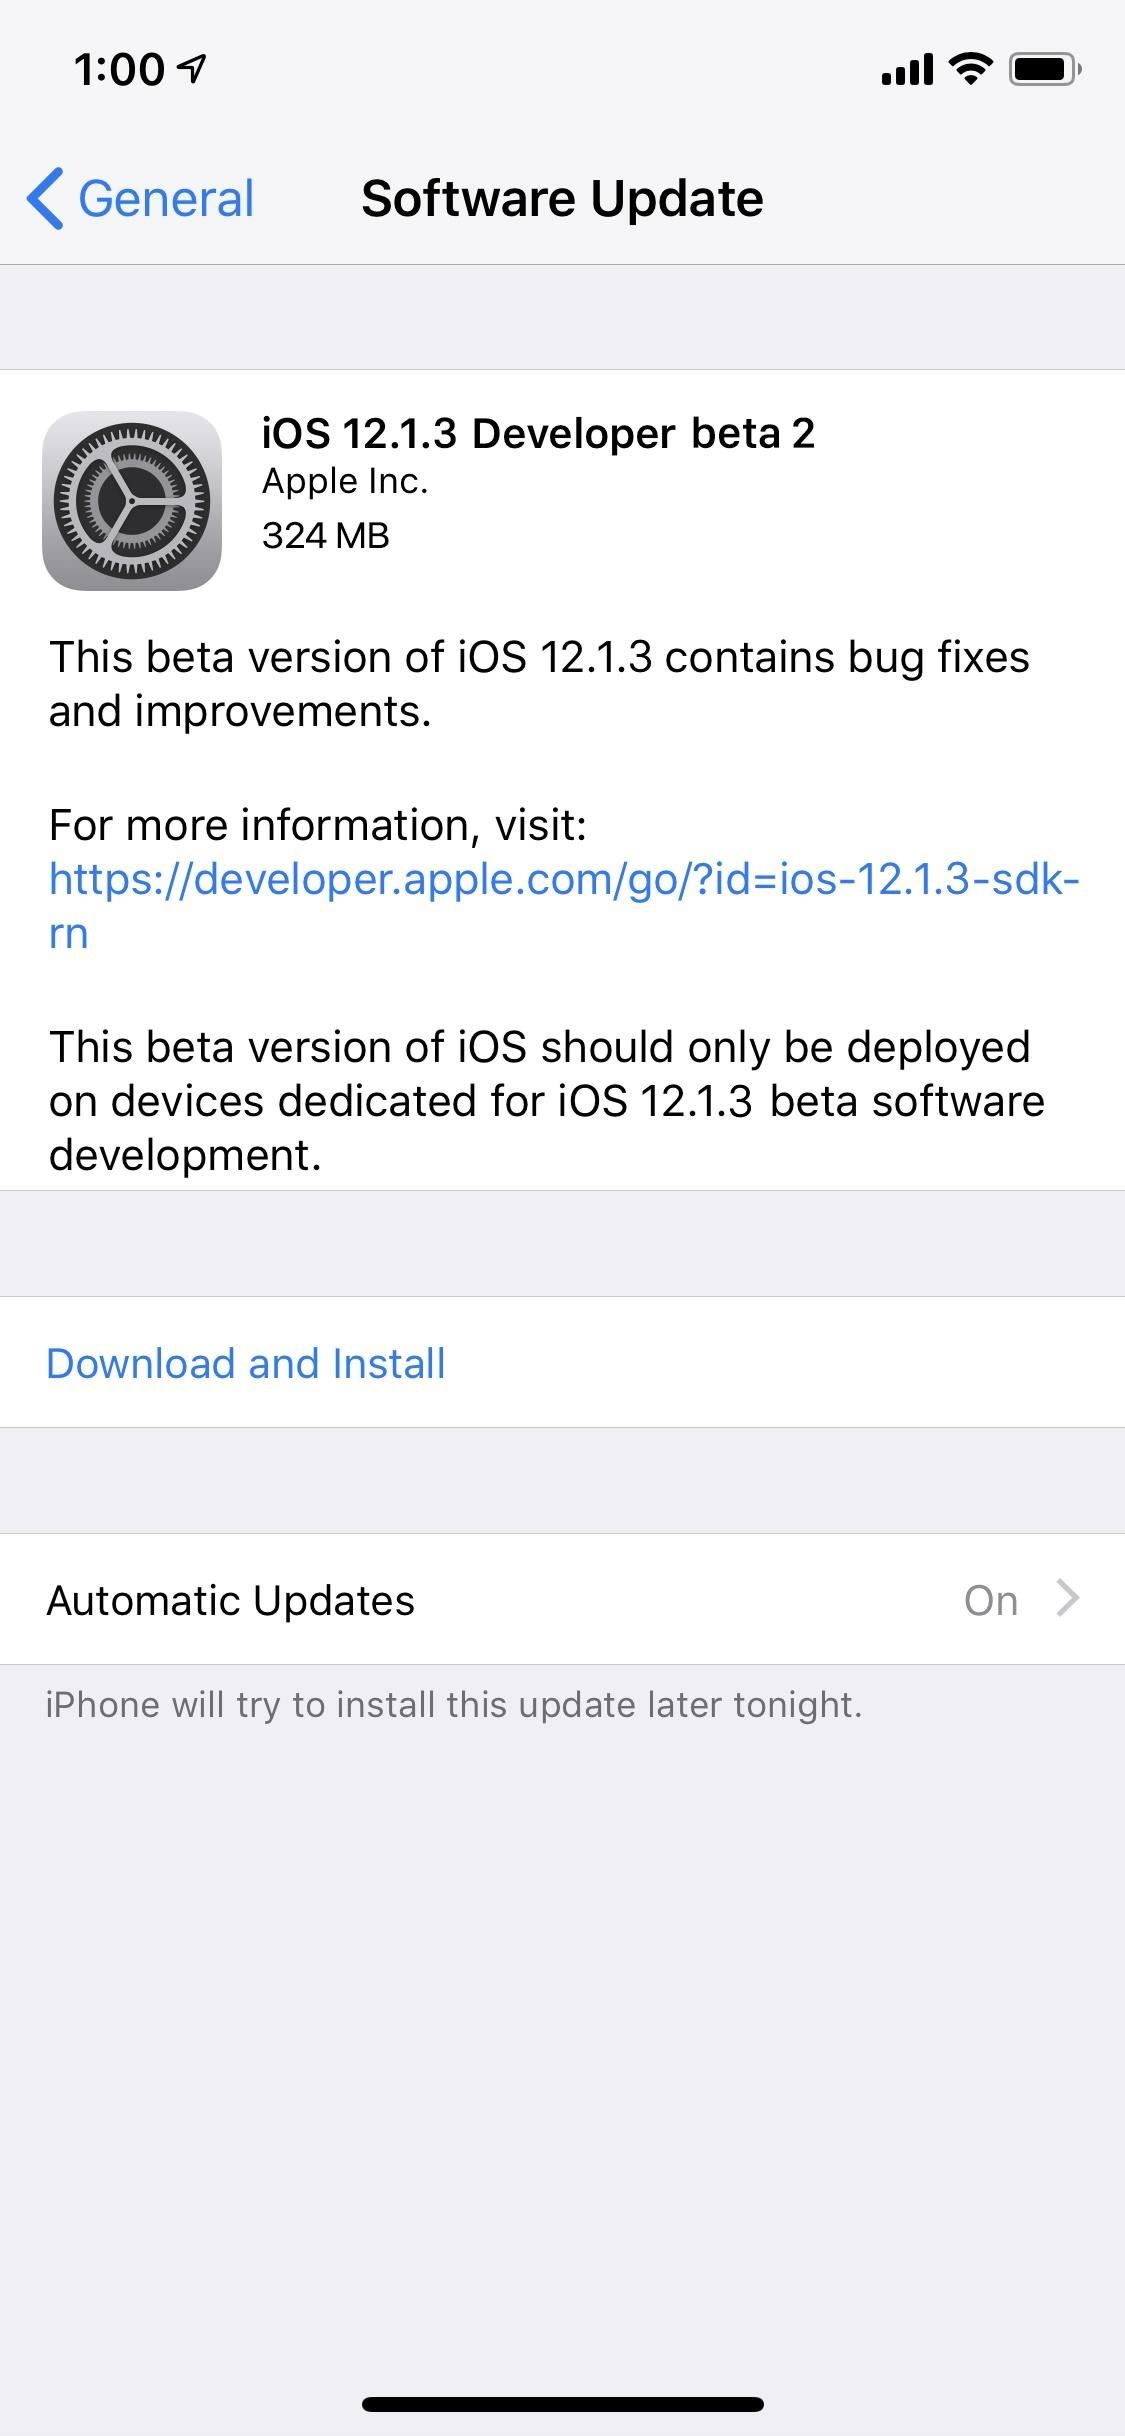 Apple Just Released Its iOS 12.1.3 Developer Beta 2 for iPhone